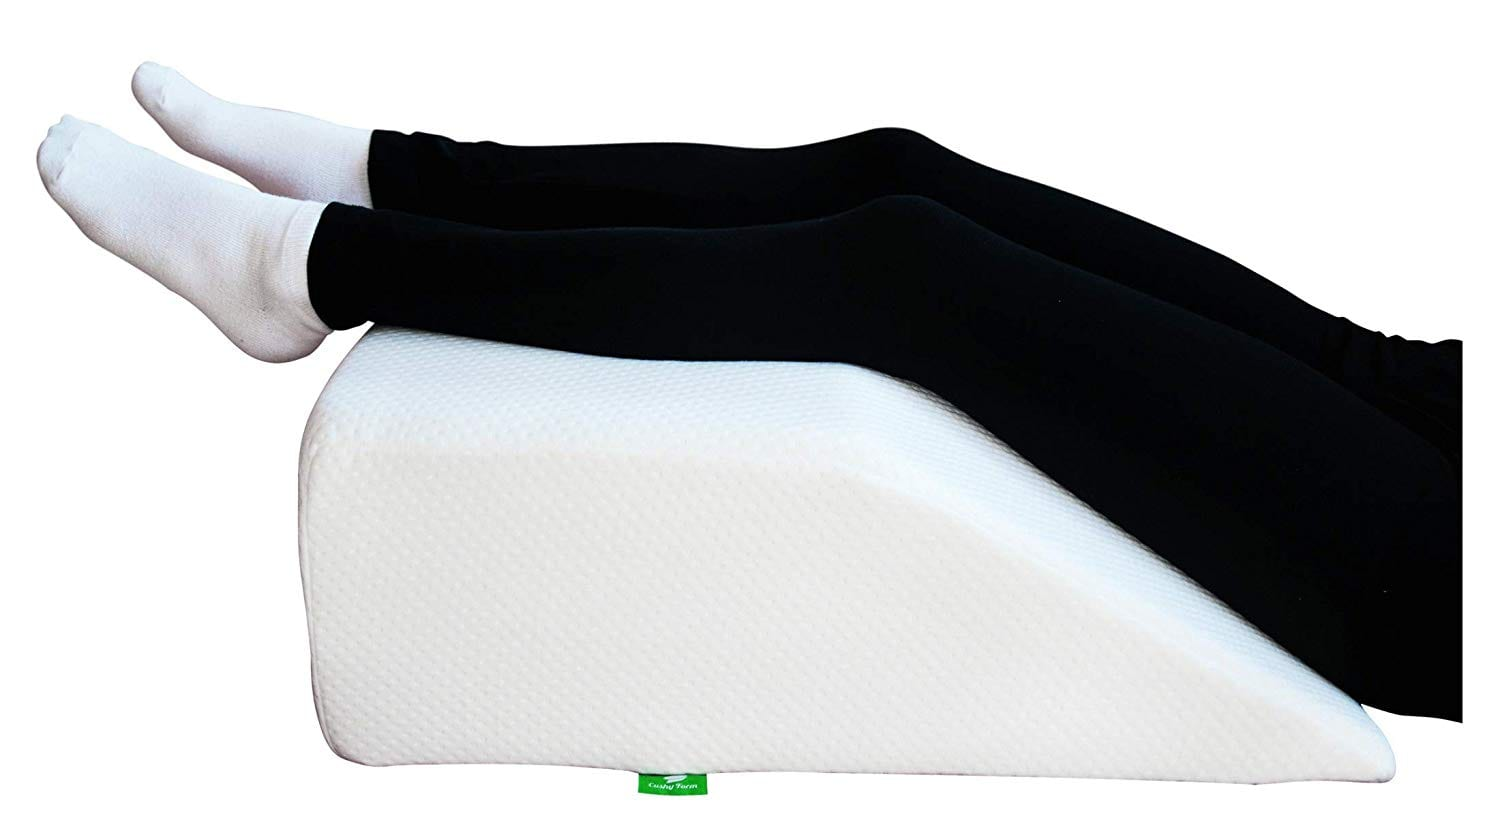 Cushy Form Leg Pillow Review by www.snoremagazine.com